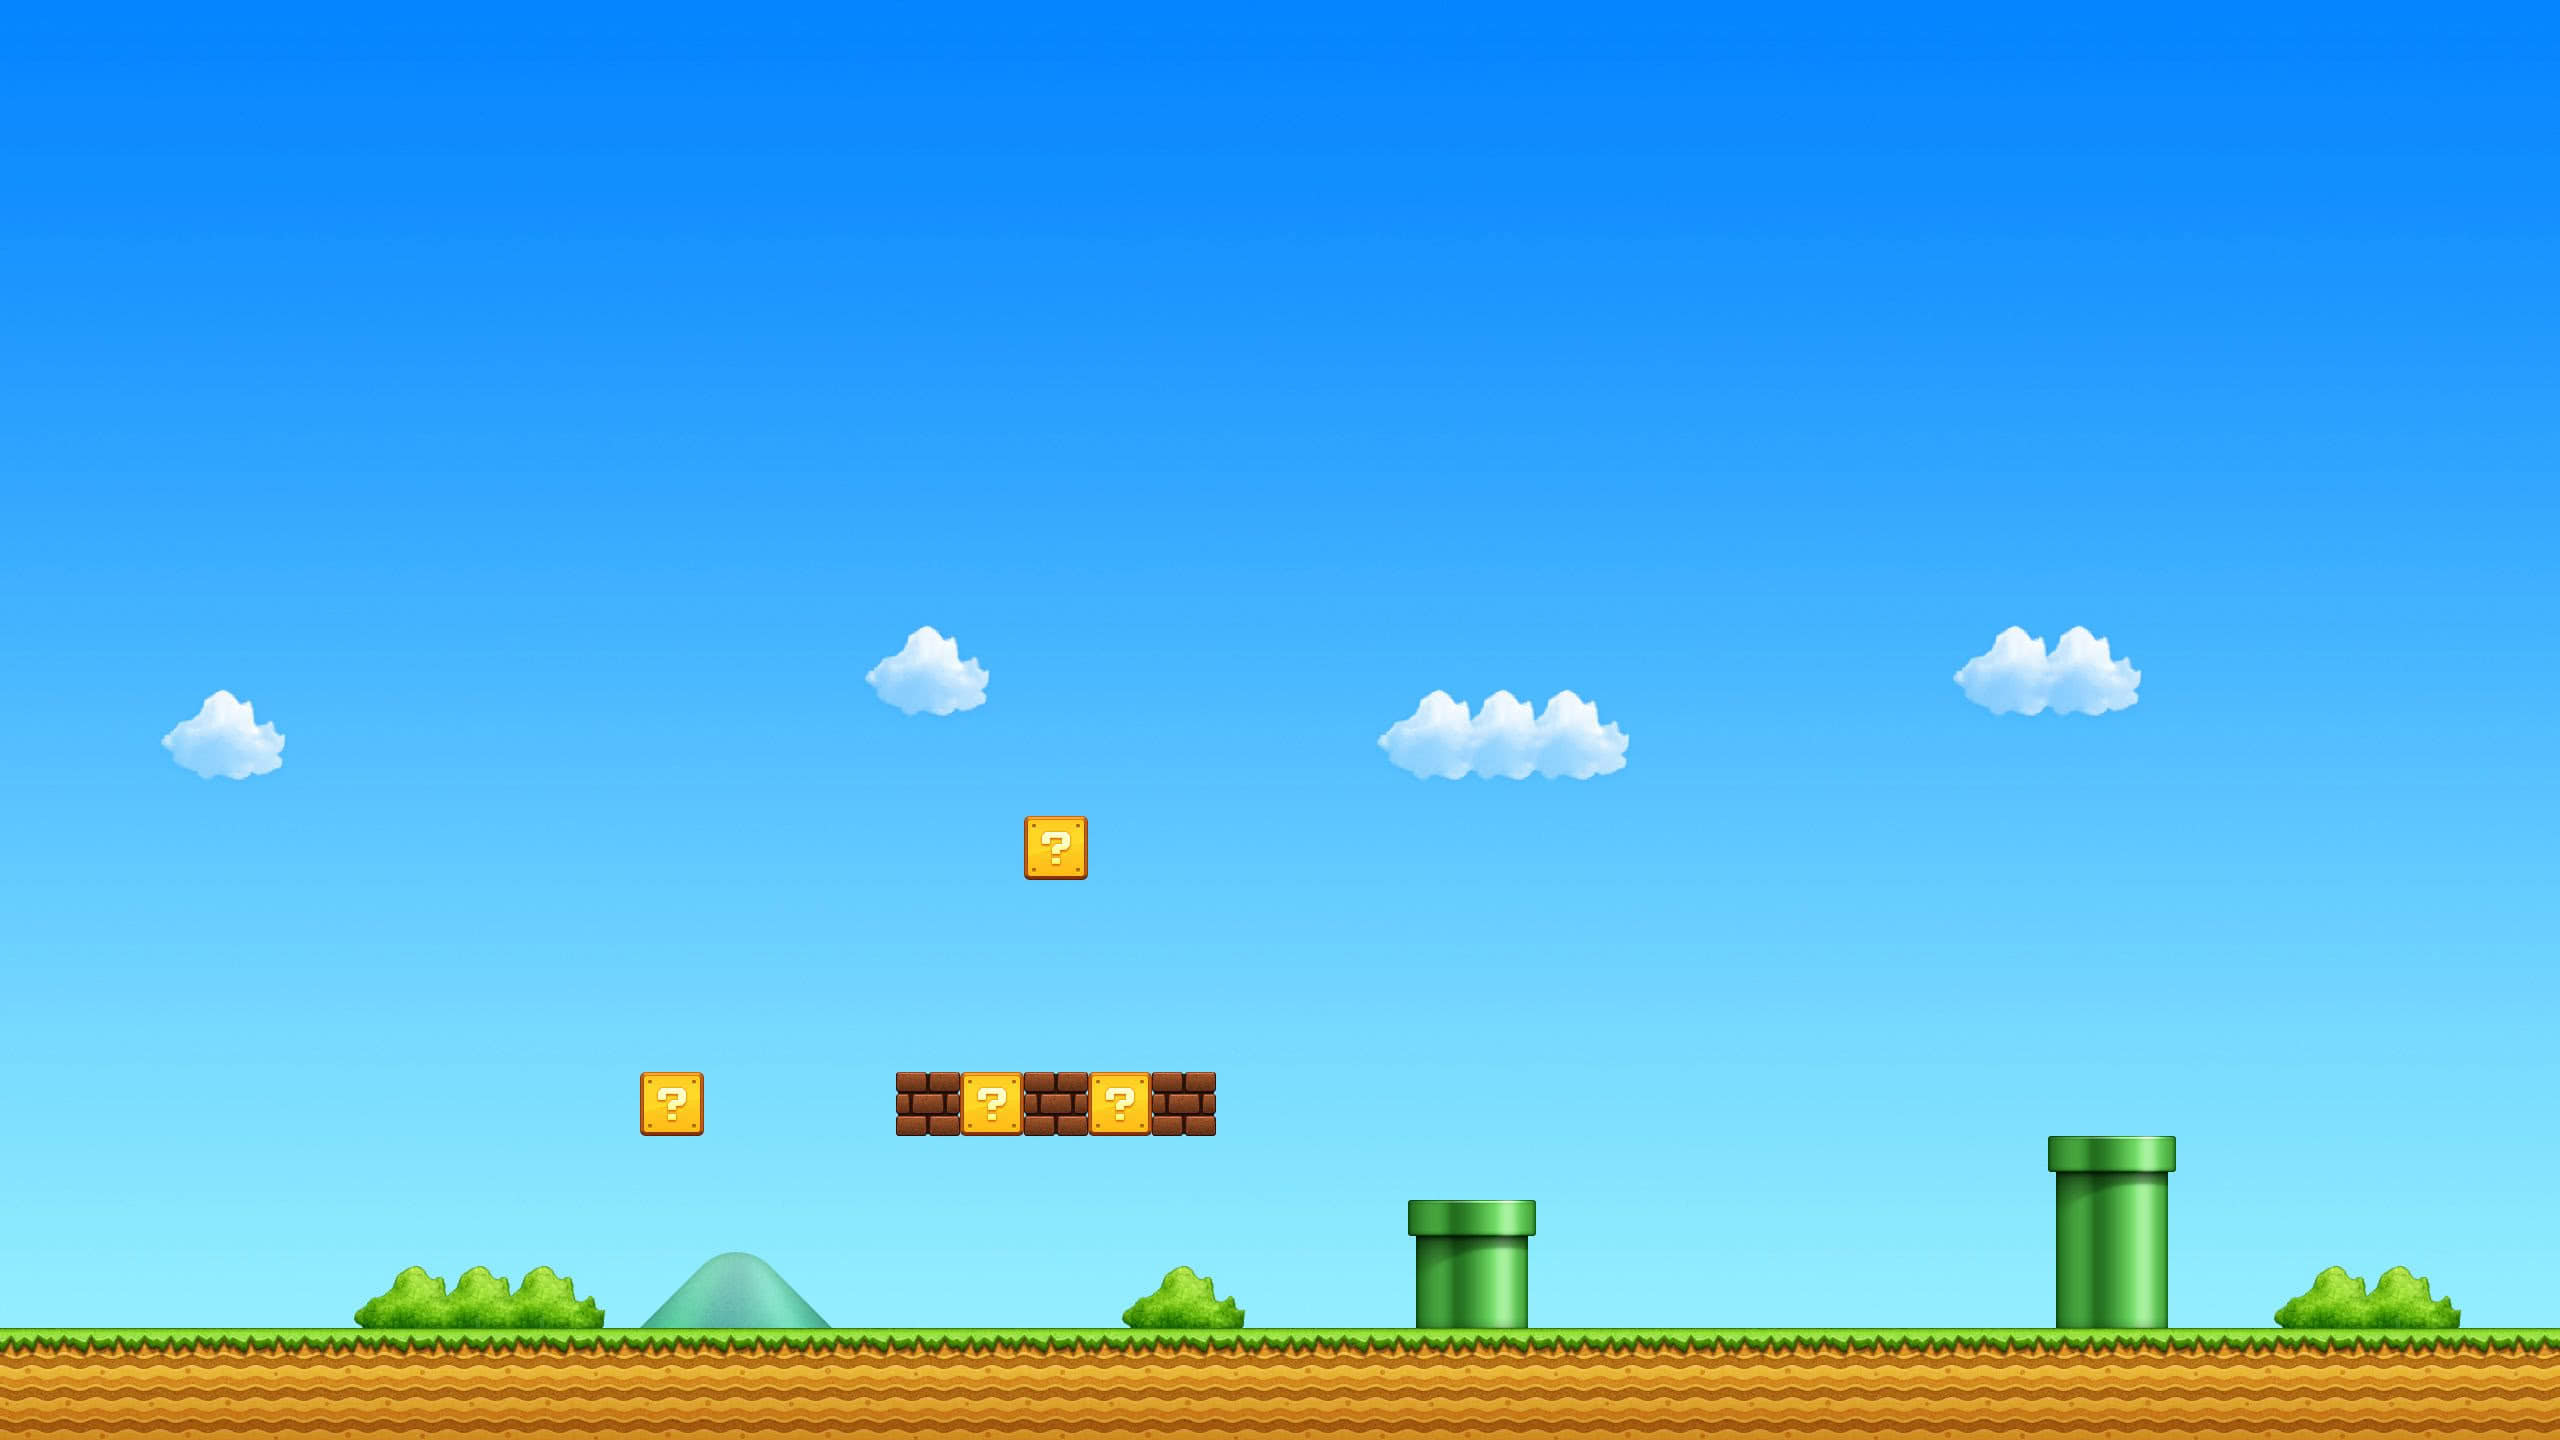 Mario Background WQHD 1440P Wallpaper Pixelz 2560x1440